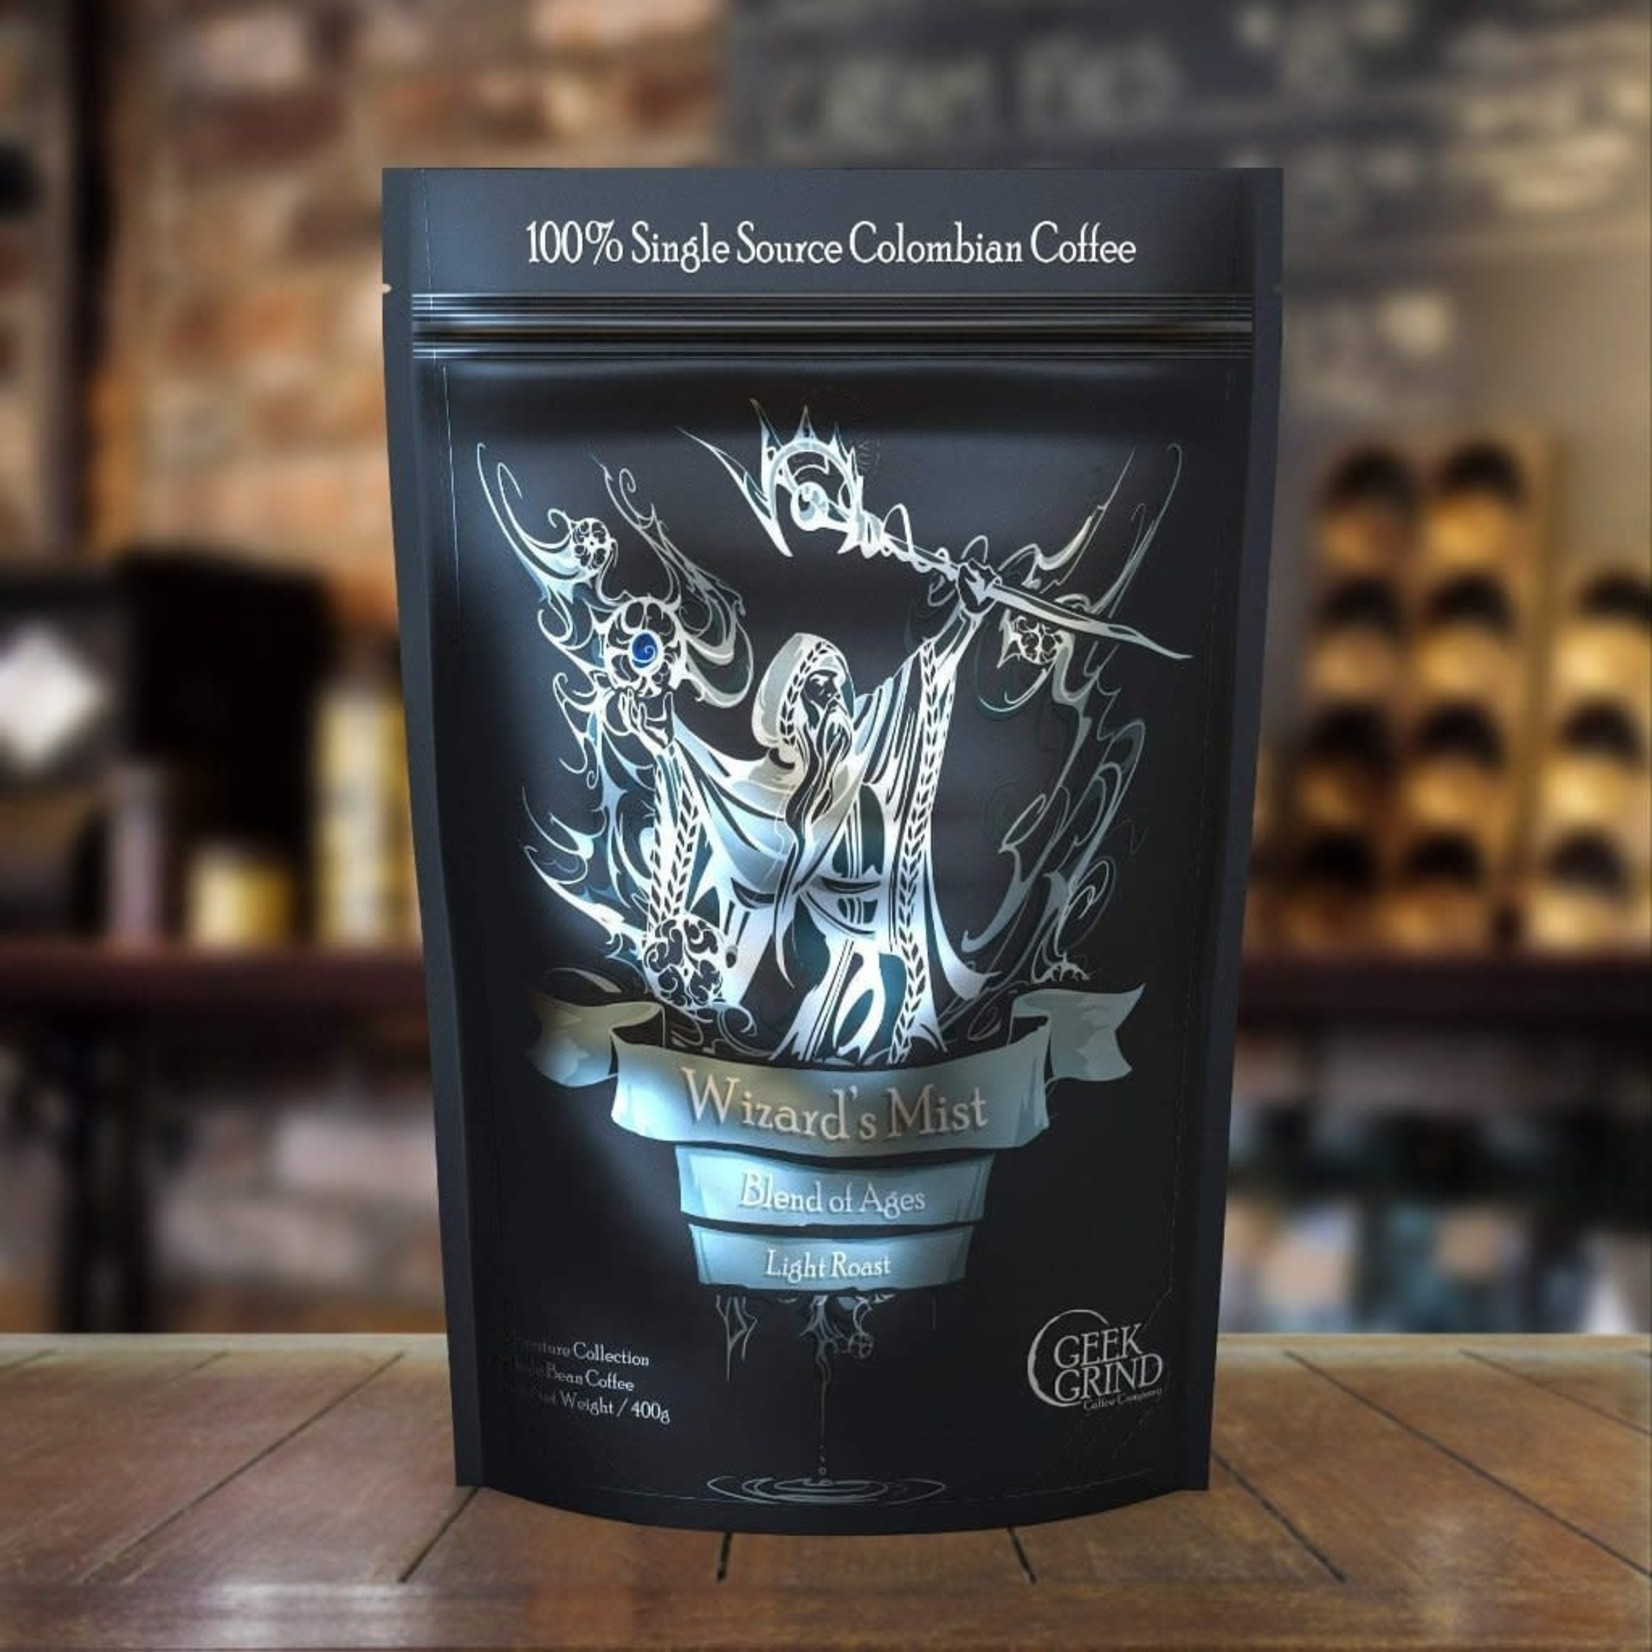 Geek Grind Wizard's Mist Blend Ages Light Roast 5lb